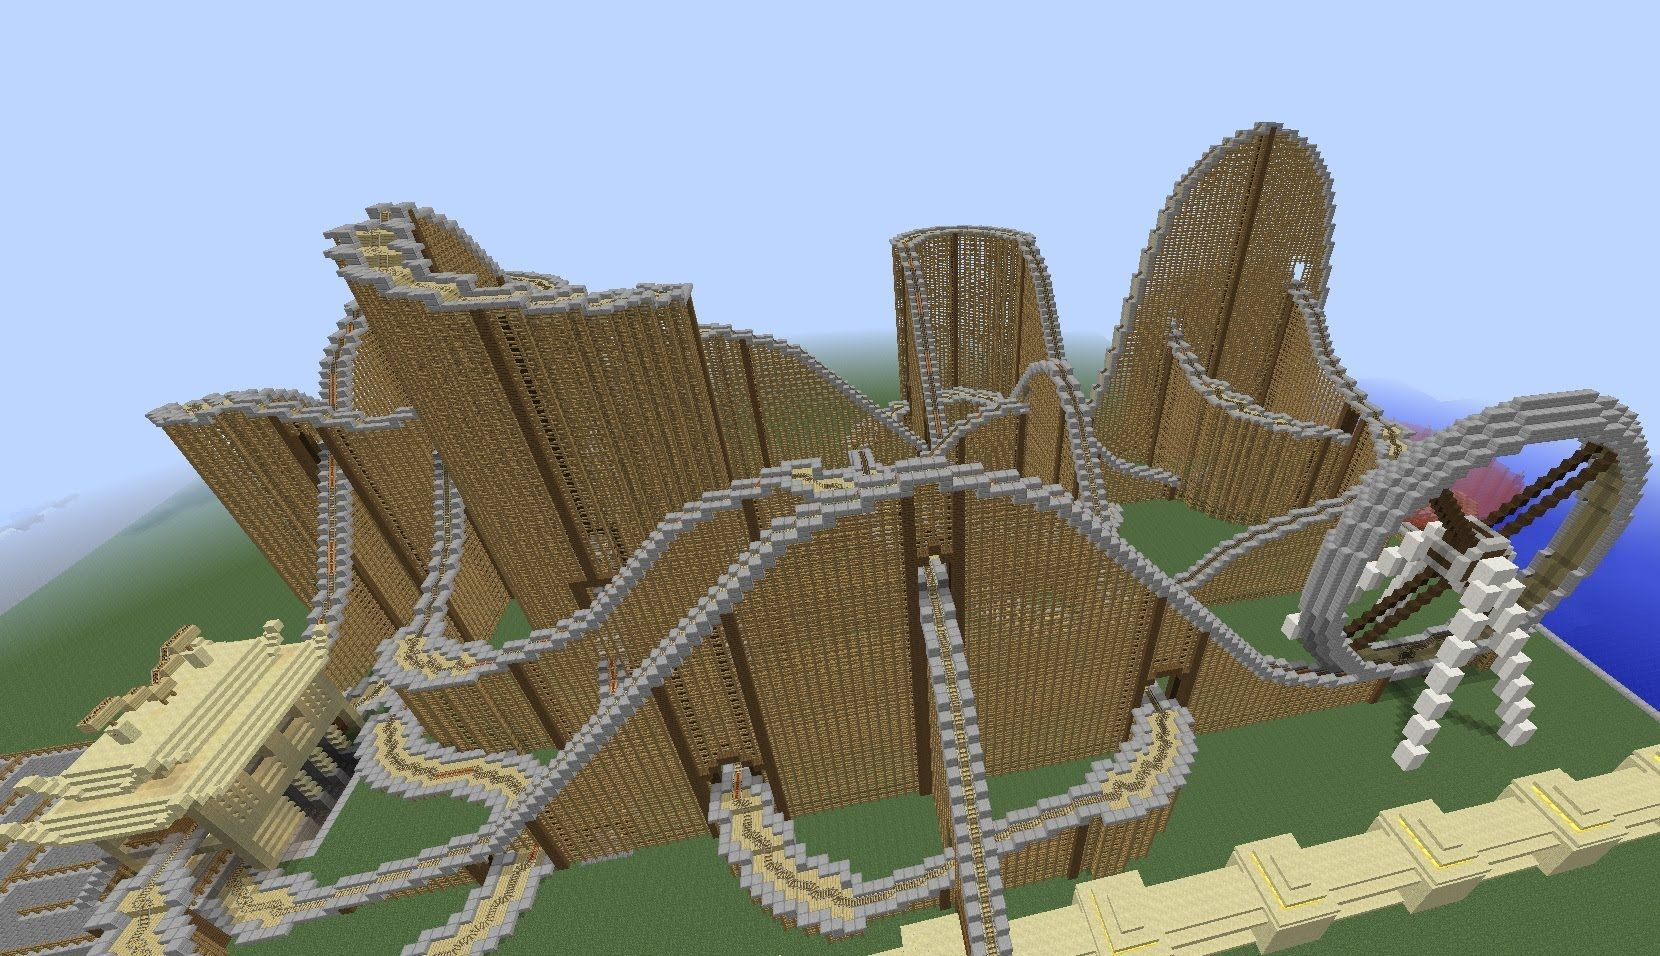 Incredible Minecraft Roller Coaster If It Took This Long To Ride